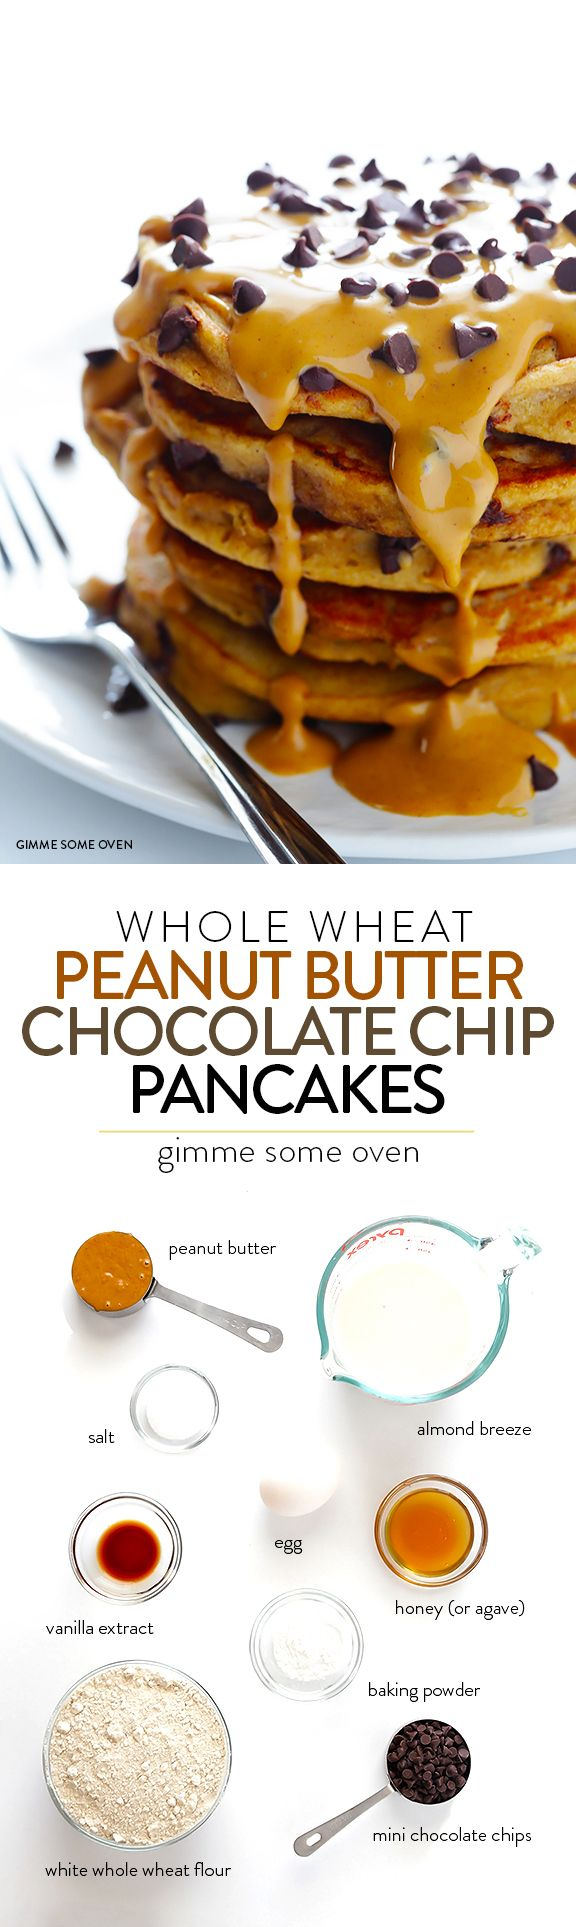 Whole Wheat Peanut Butter Chocolate Chip Pancakes - So delicious, and made healthier with a few simple tweaks!